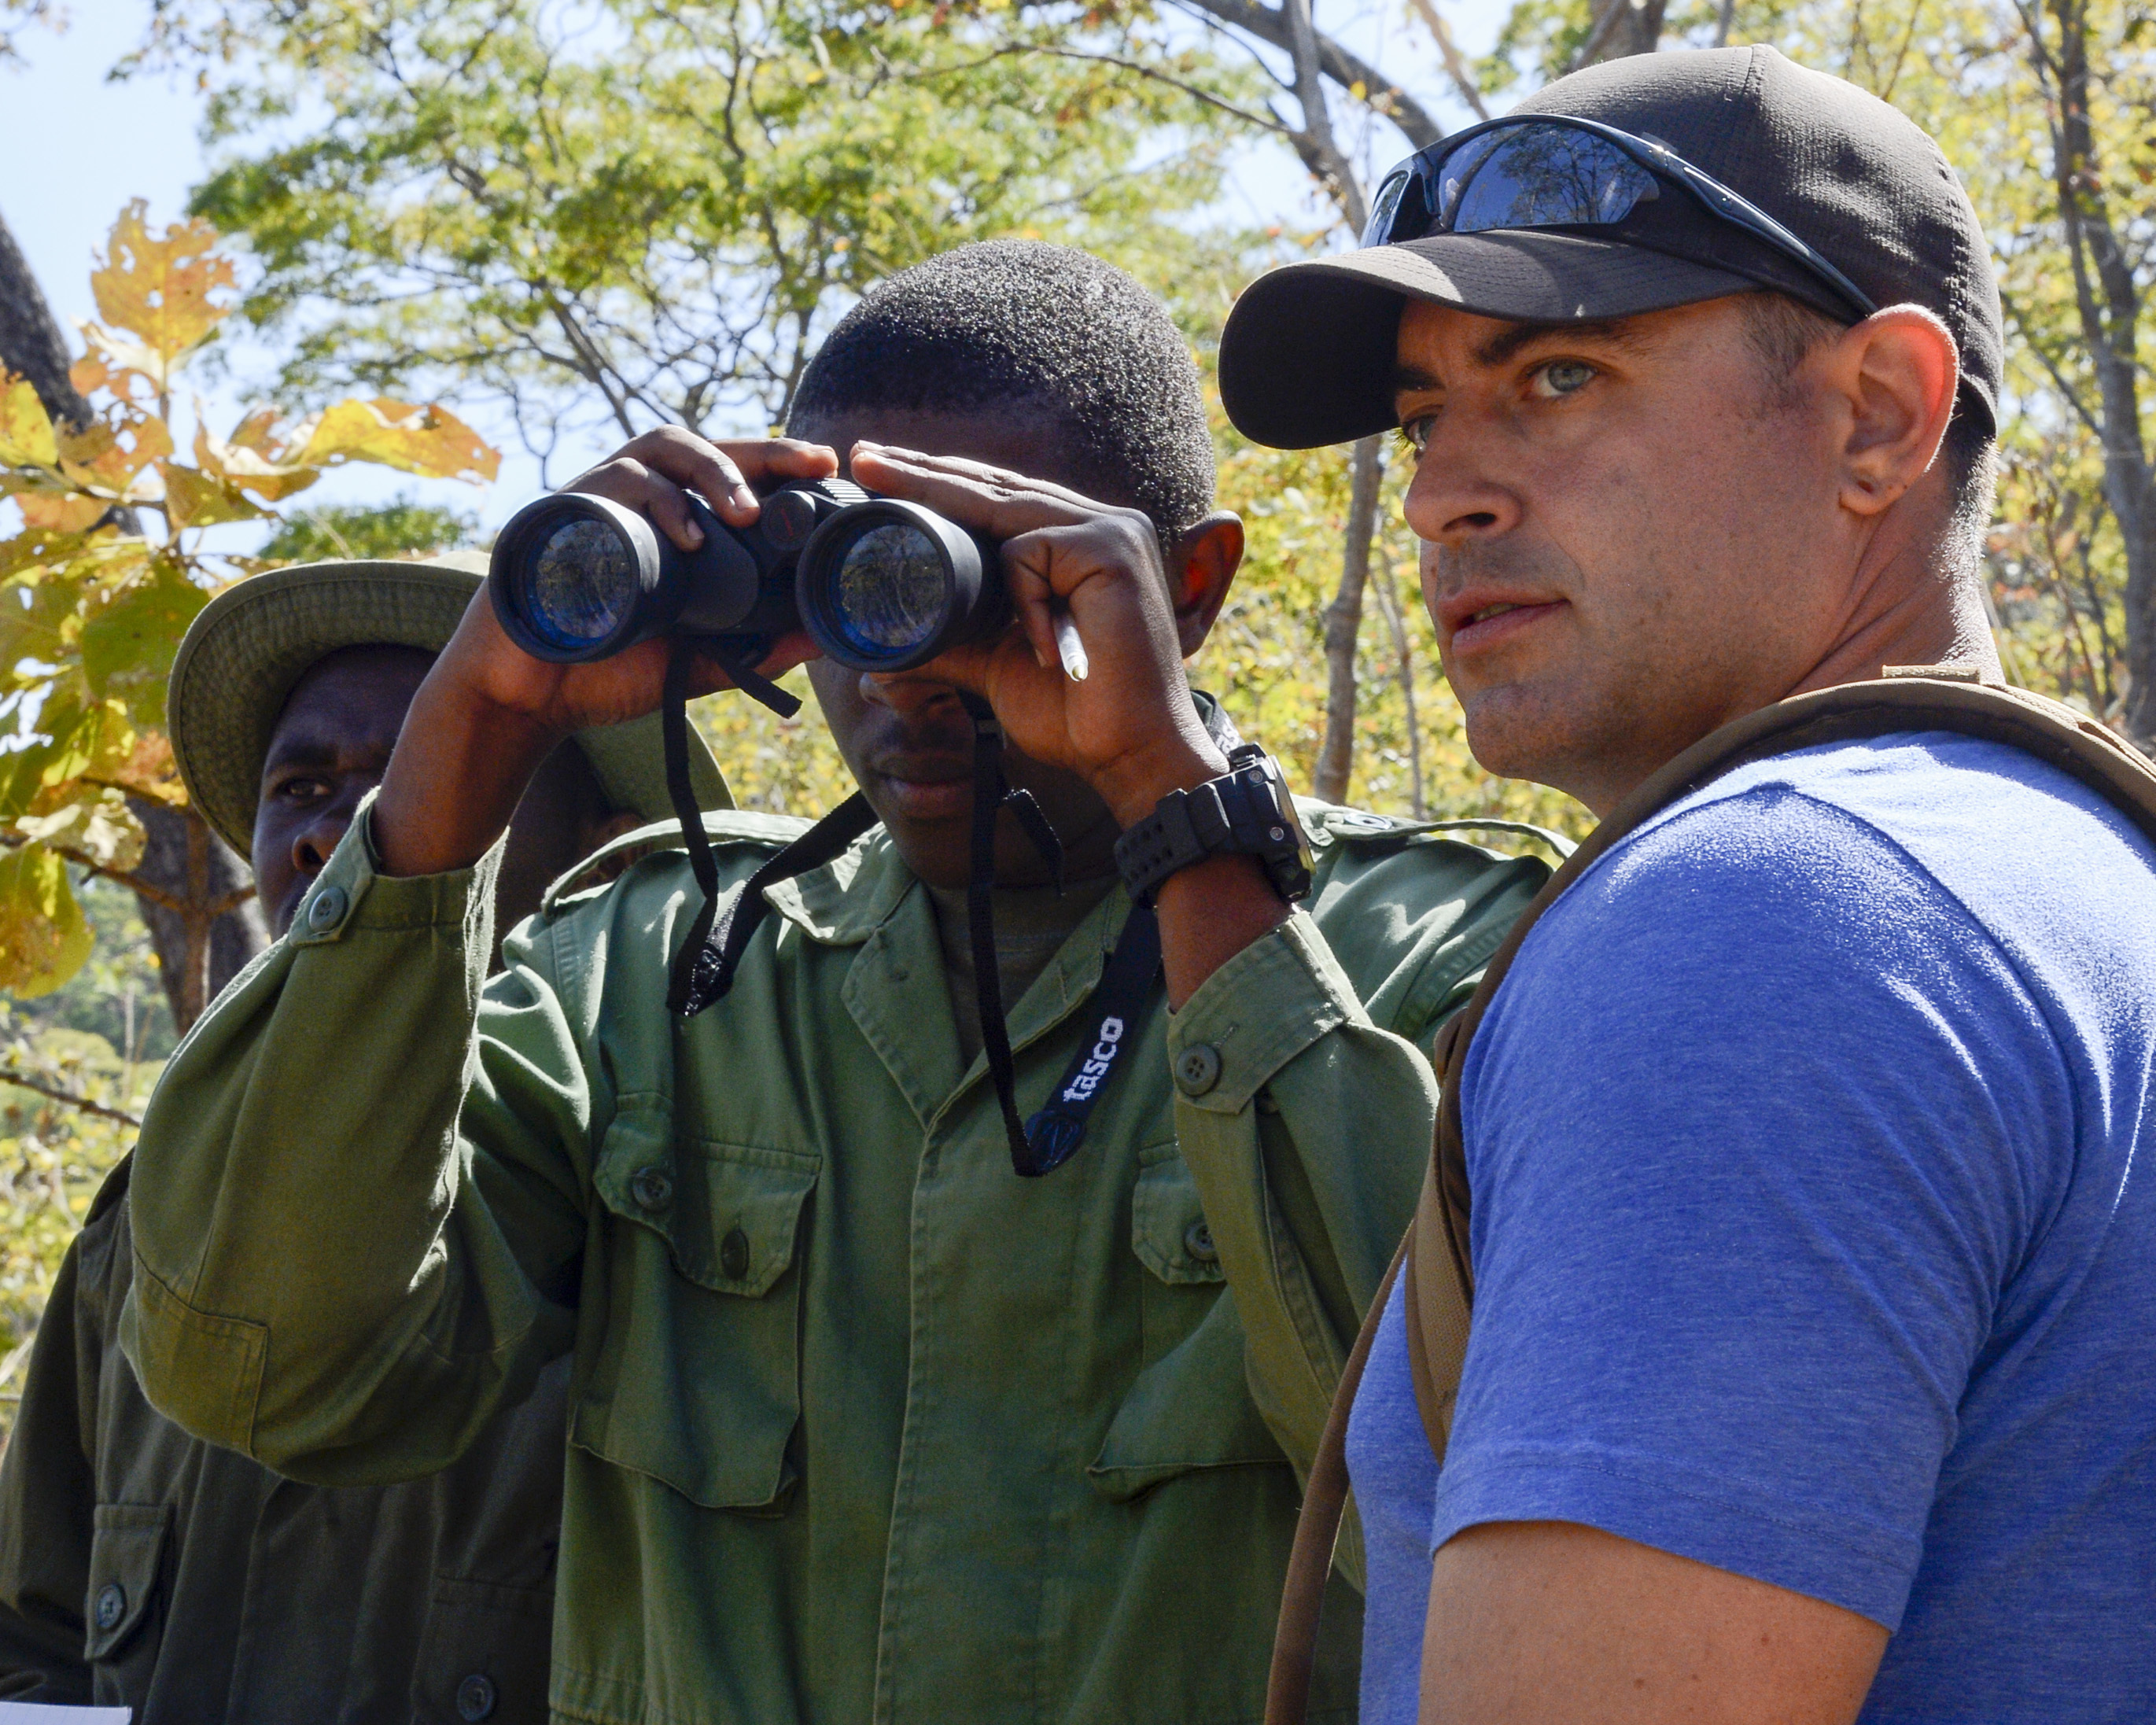 U.S. Army Staff Sgt. David Marcet, with the 404th Civil Affairs Battalion, assigned to Combined Joint Task Force-Horn of Africa, provides guidance during a practical exercise in ground reconnaissance for Tanzania Wildlife Management Authority (TAWA) patrol game wardens during a Counter Illicit Trafficking course, in Ngwala, Tanzania, July 24, 2018. The course provided by the 404th Civil Affairs Battalion is a month-long course to enhance TAWA's anti-poaching capabilities in Tanzania. (U.S. Navy Photo by Mass Communication Specialist 2nd Class Timothy M. Ahearn)